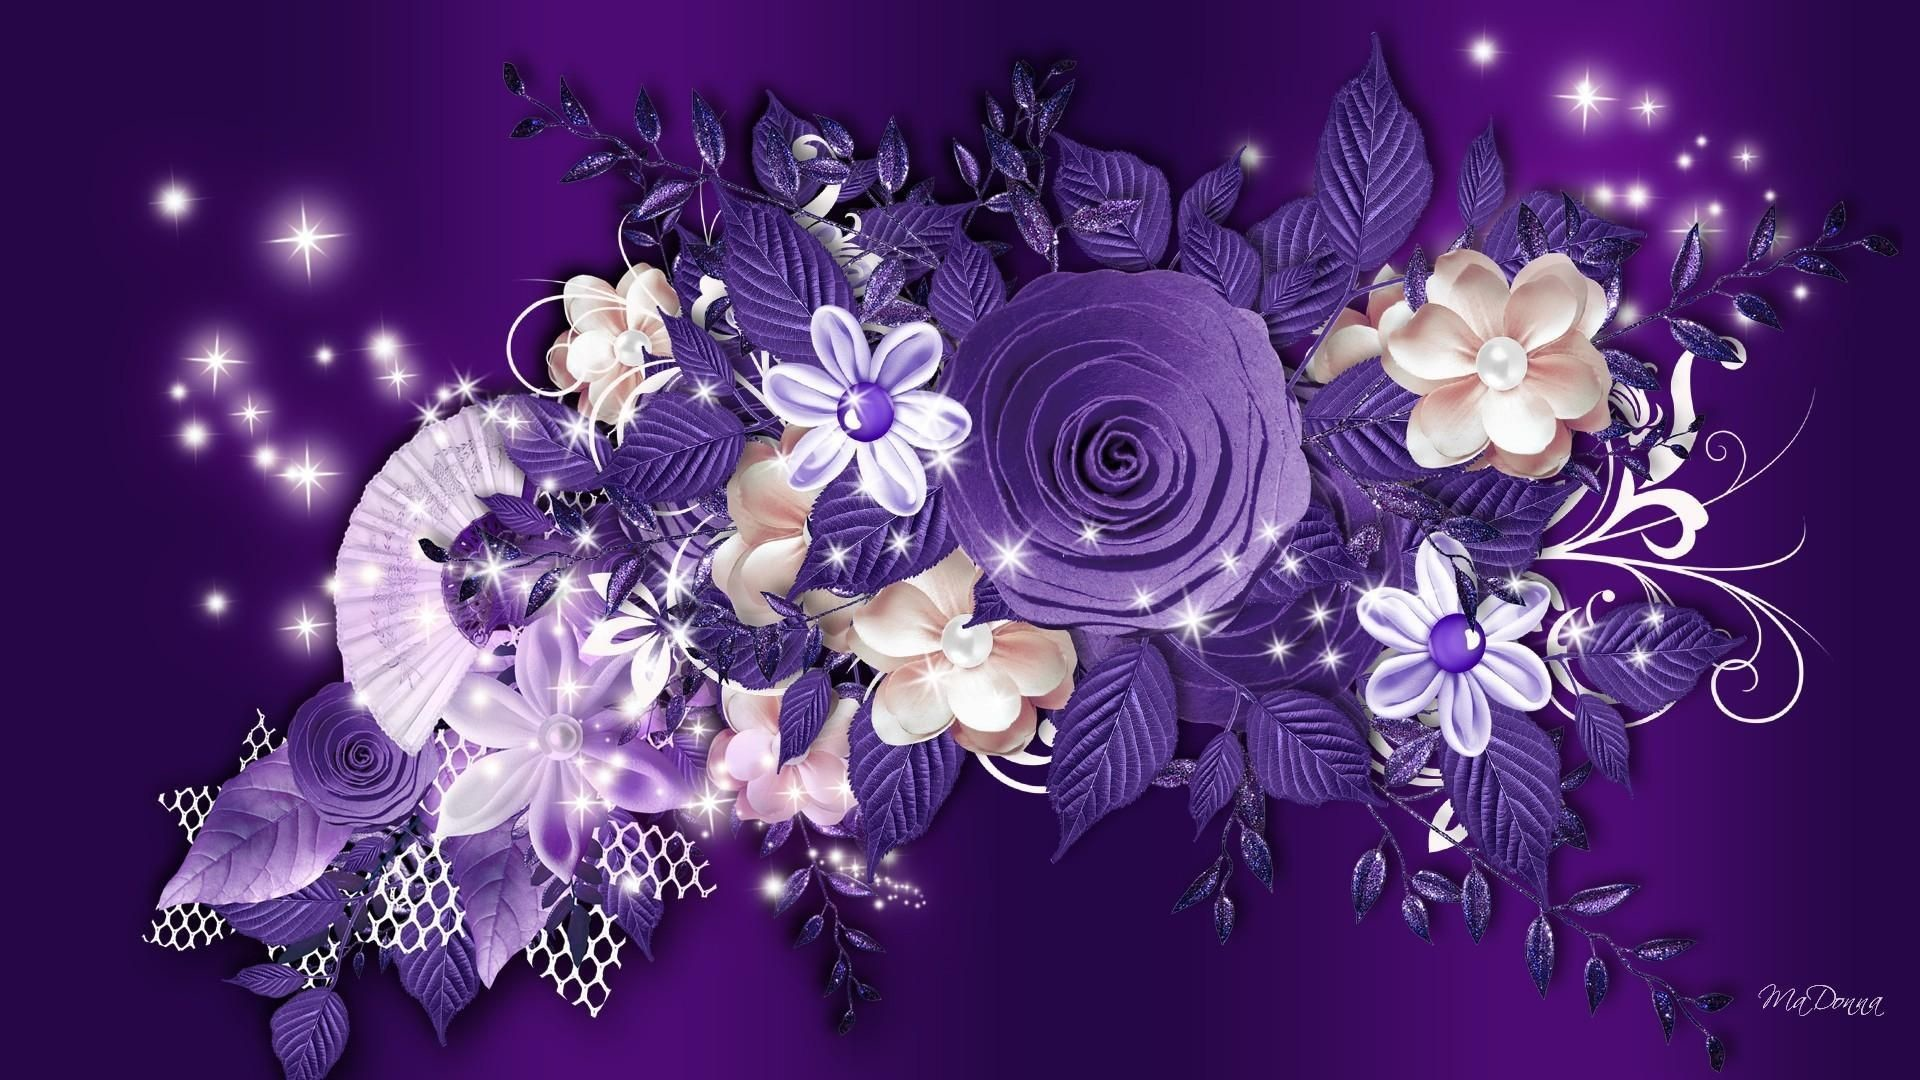 Res: 1920x1080, Purple Rose Wallpaper | Purple roses and other flowers on a purple  background wallpapers and .